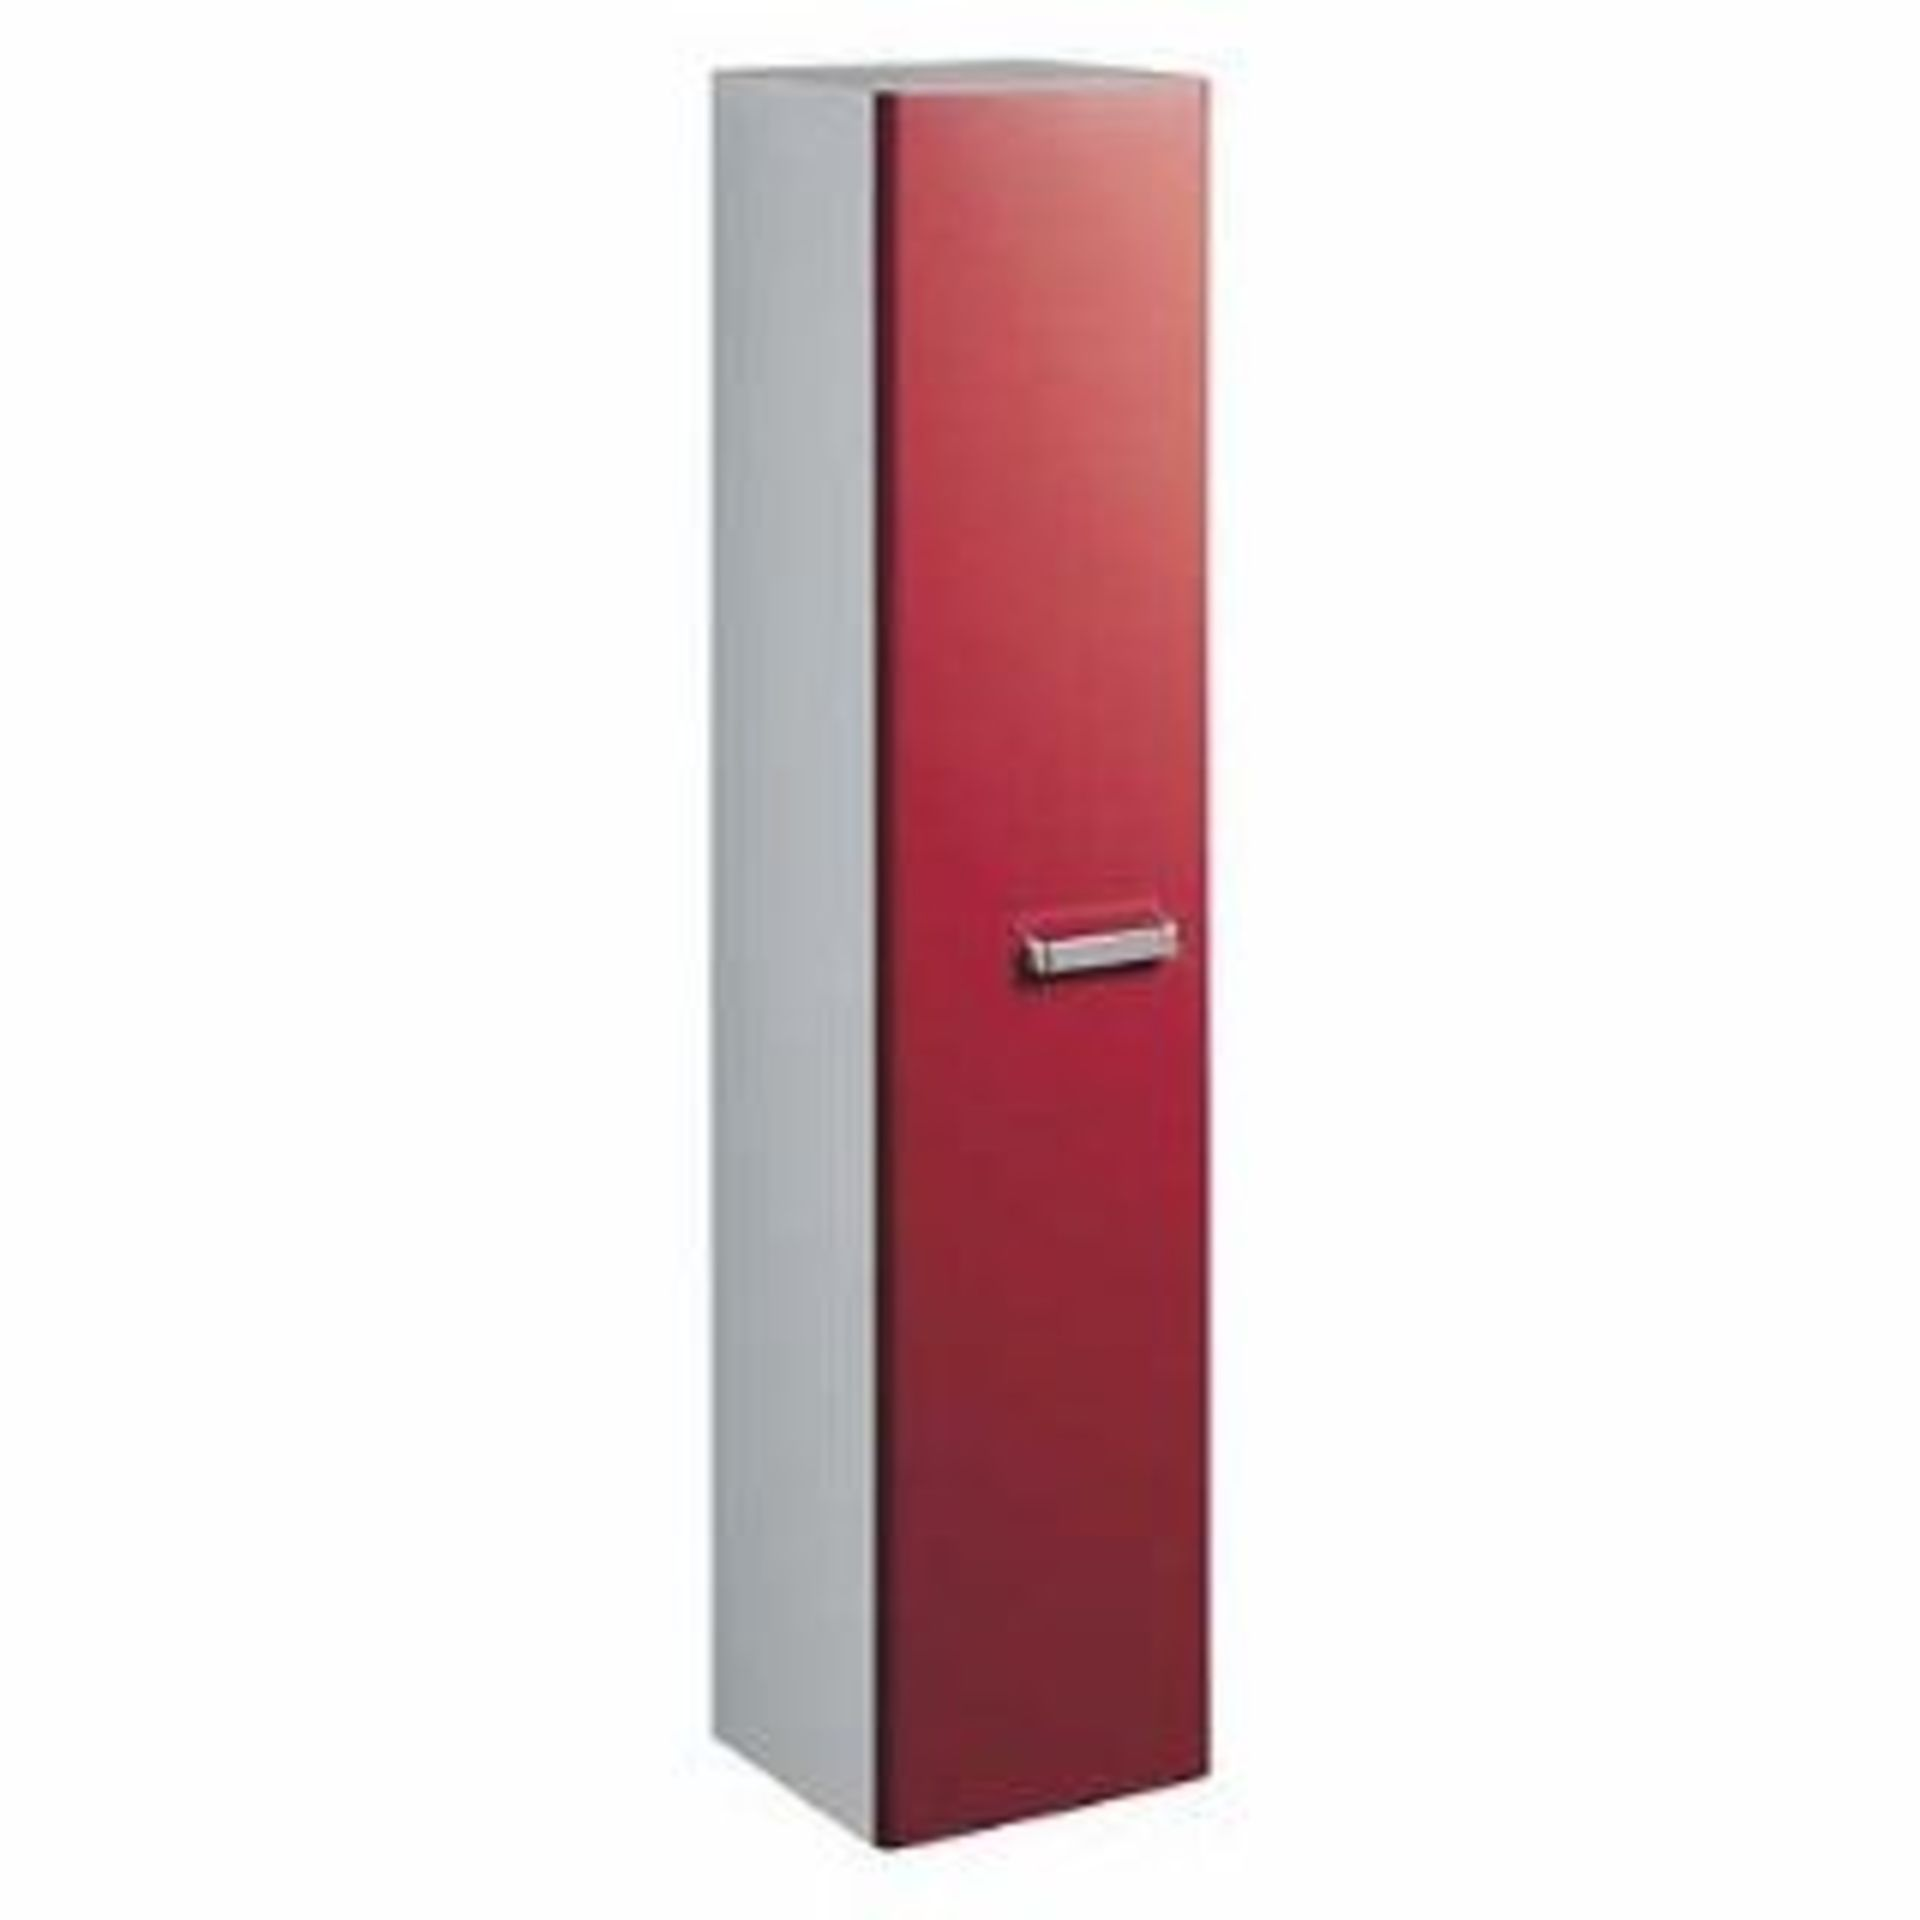 Lot 814 - Brand New (SA24) Twyford 1730mm Galerie Plan Red Tall Furniture Unit. RRP £666.99. Red gloss finish